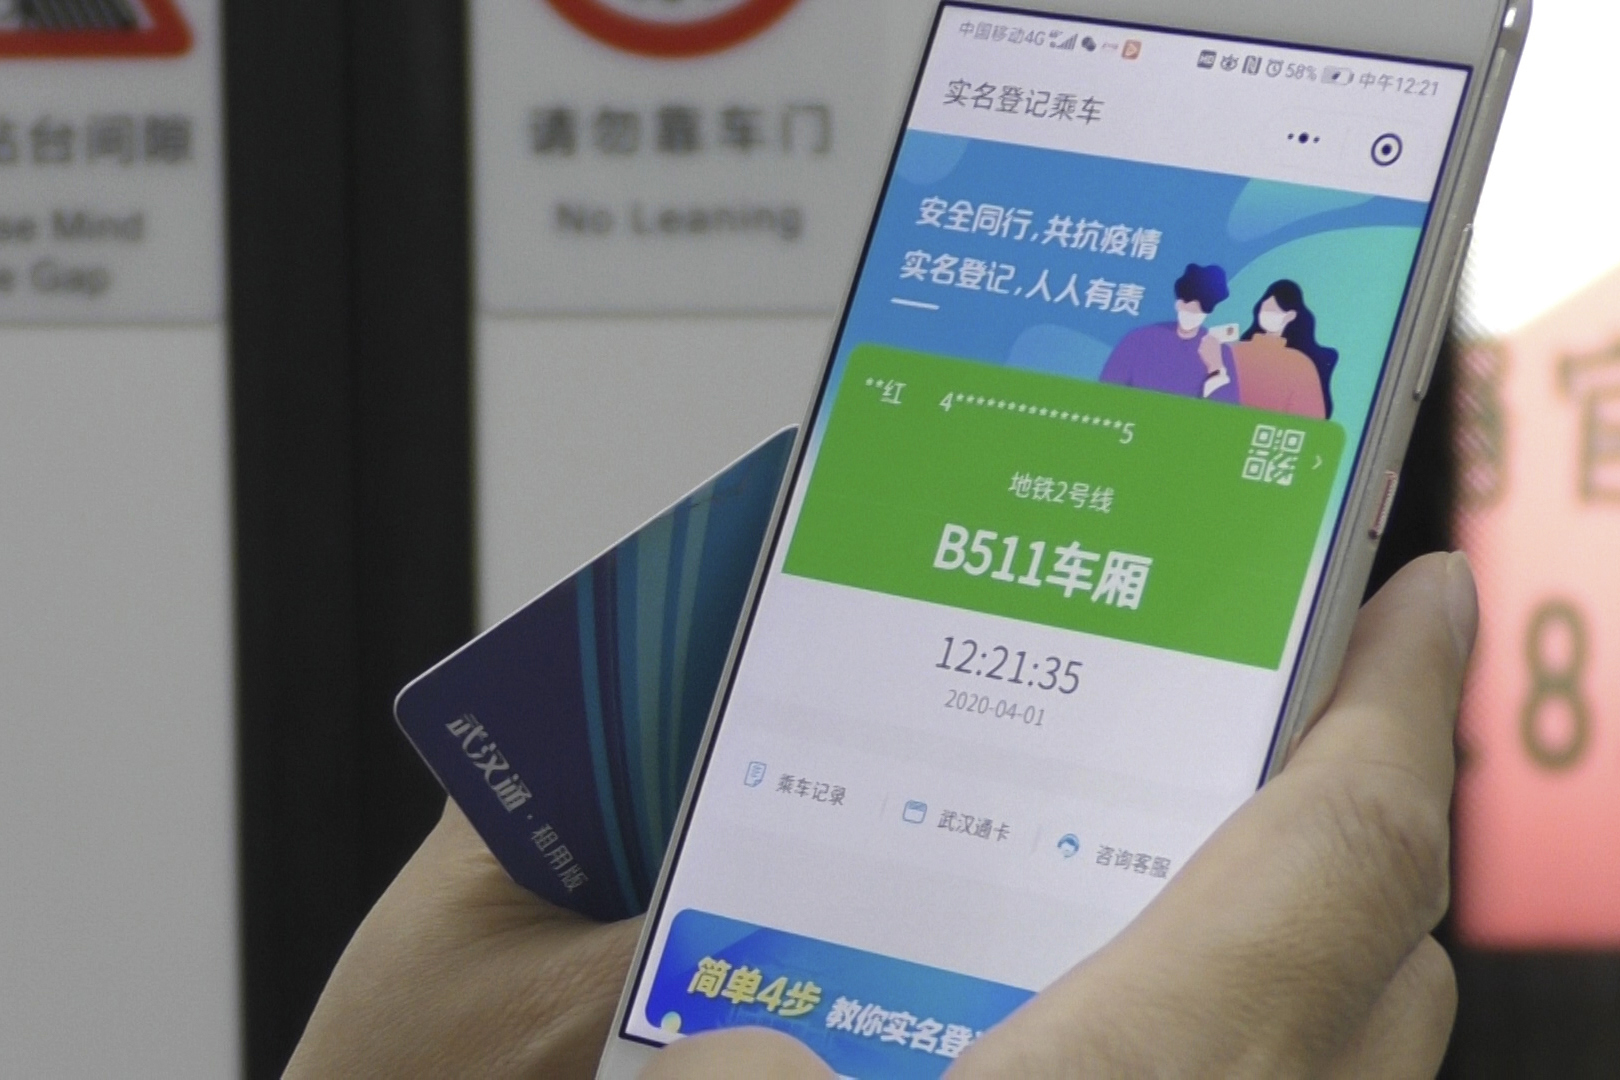 In this April 1, 2020, photo, a passenger holds up a green pass on their phone on a subway train in Wuhan in central China's Hubei province.